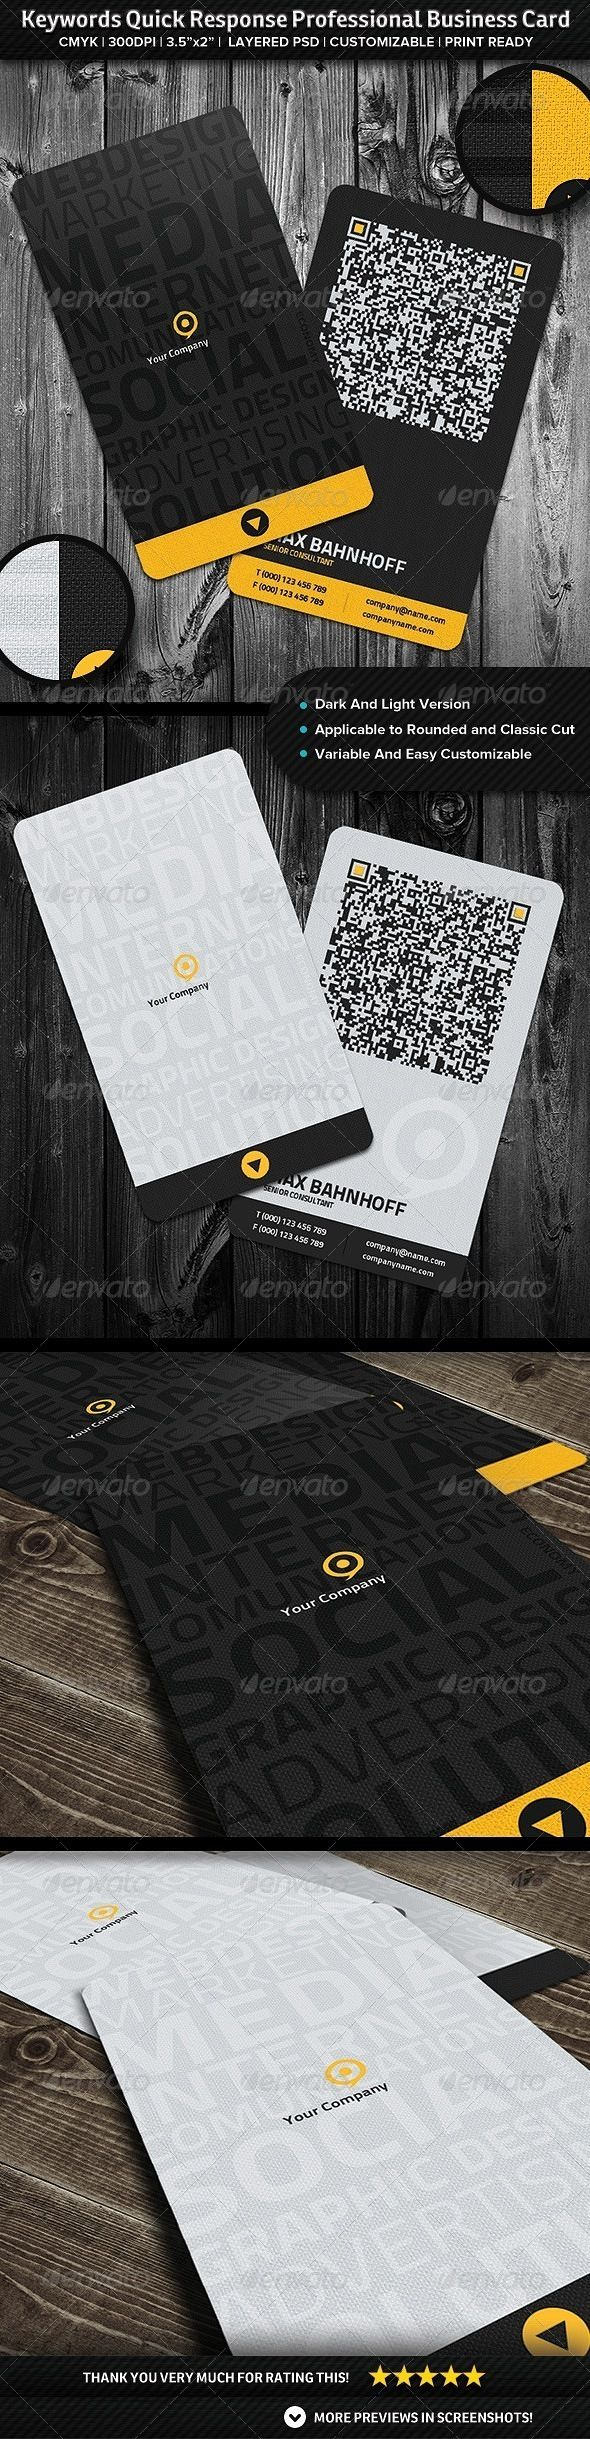 134 best Business cards images on Pinterest